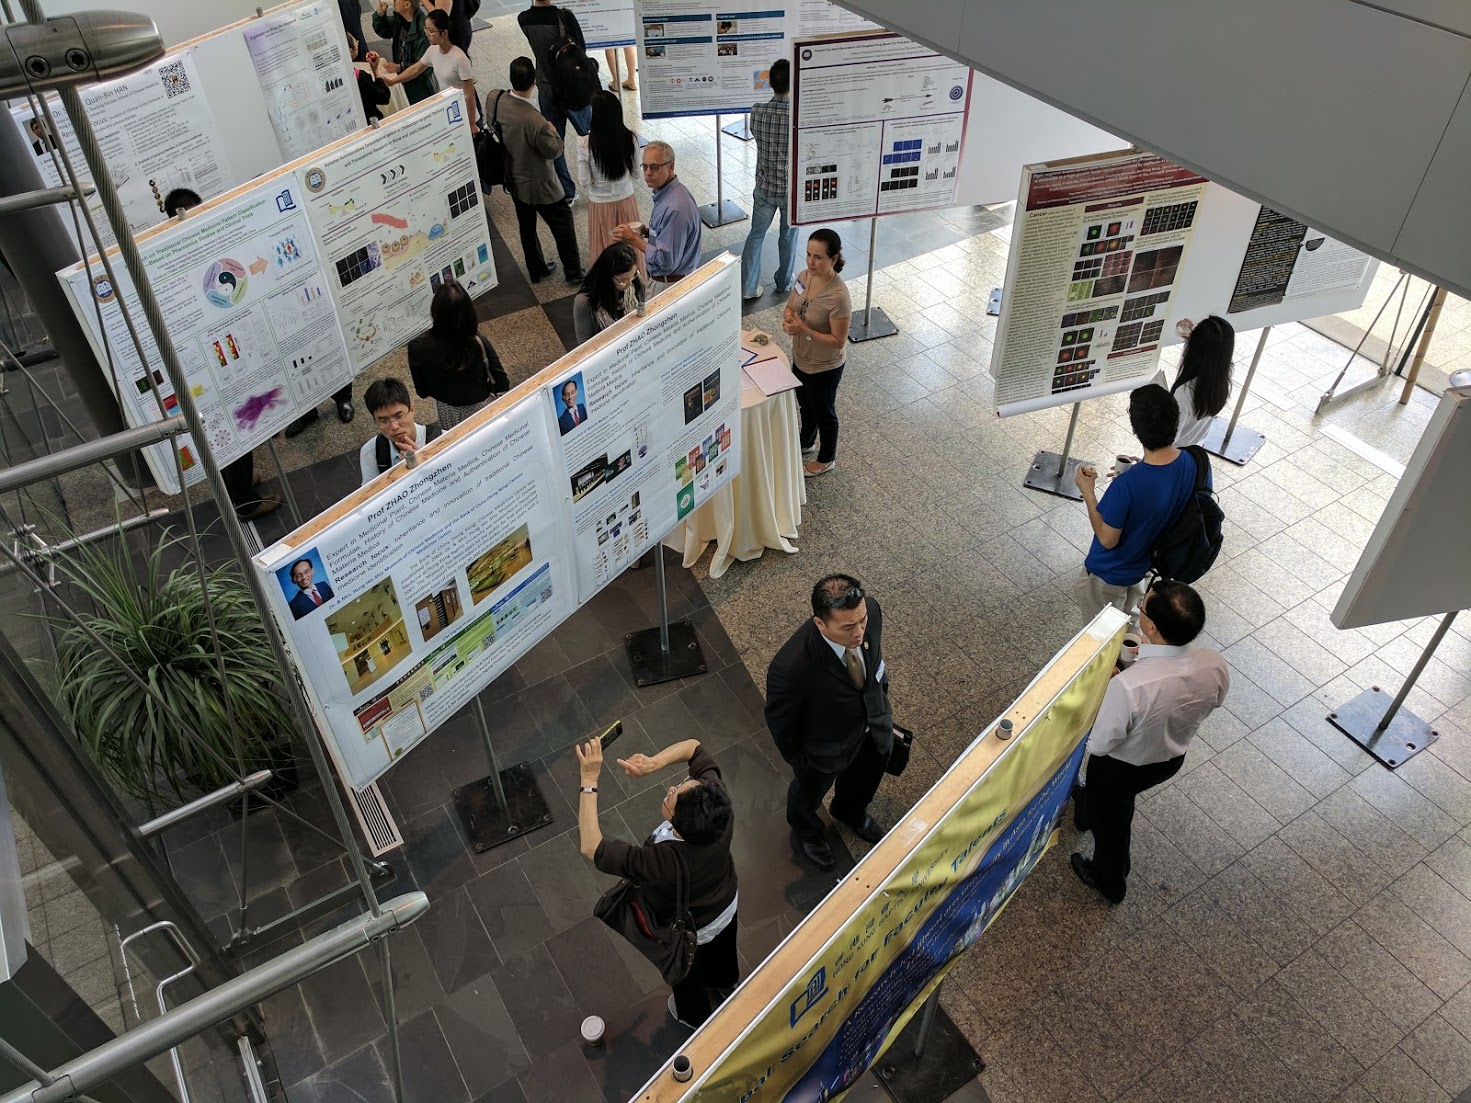 Attendees browse posters at the Traditional Chinese Medicine Symposium at HMS on June 20 and 21